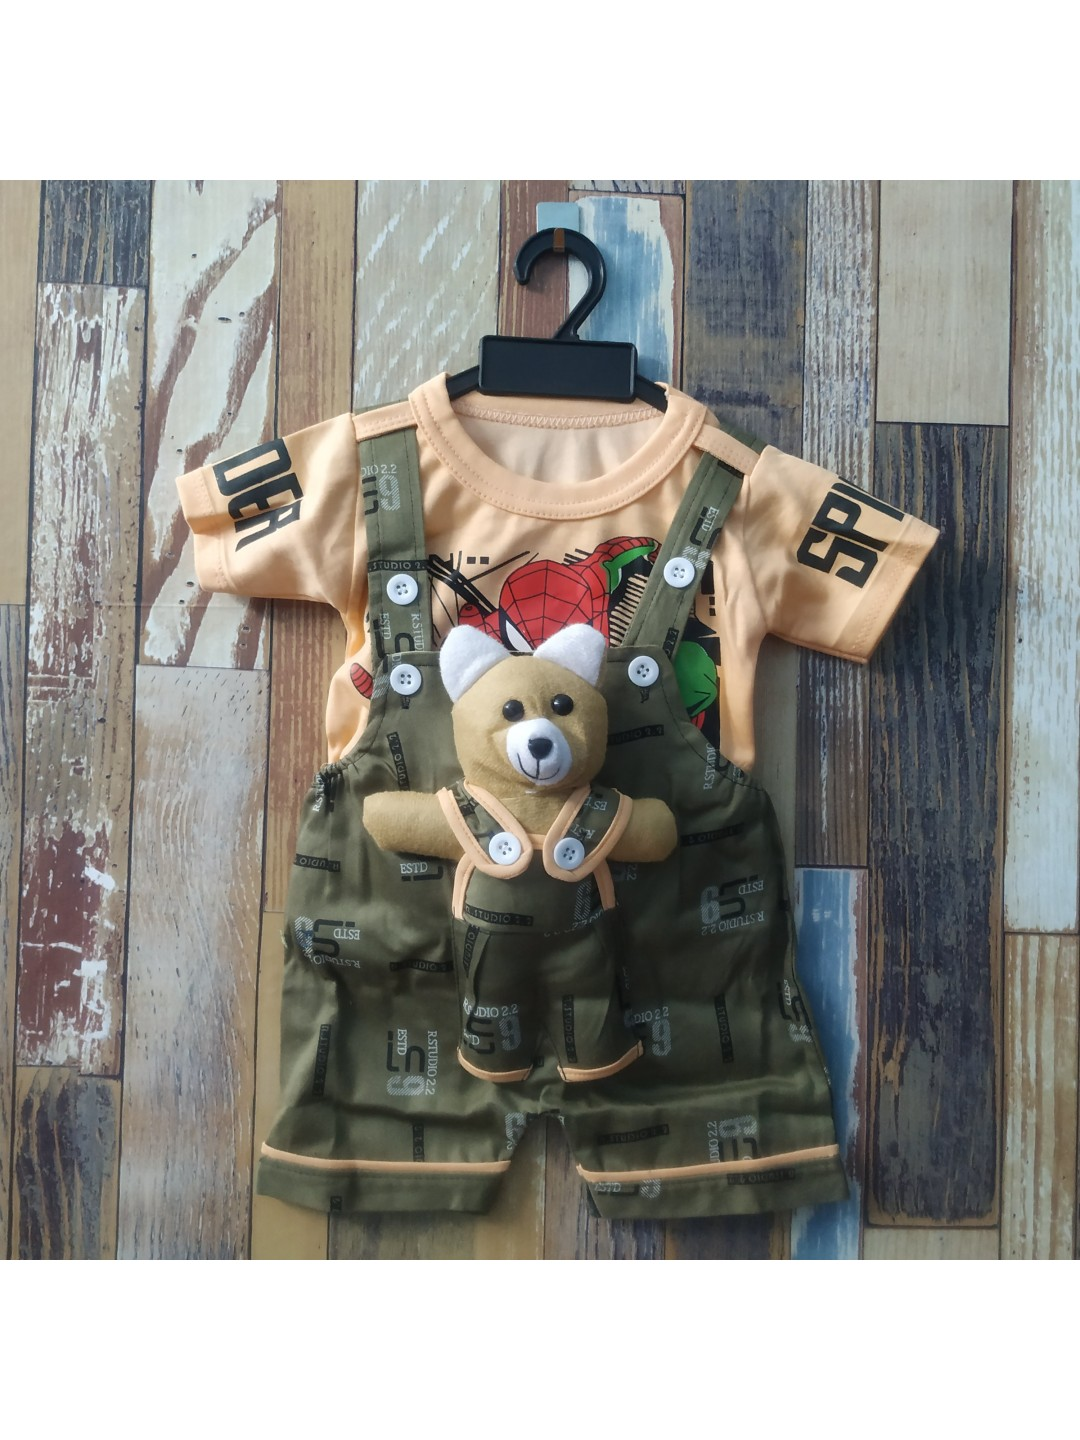 NDT Baby Boy & Baby Girl Teddy Bear Dungaree Set with T-shirt 0-1 Year || Clothes for Baby boy and Girl